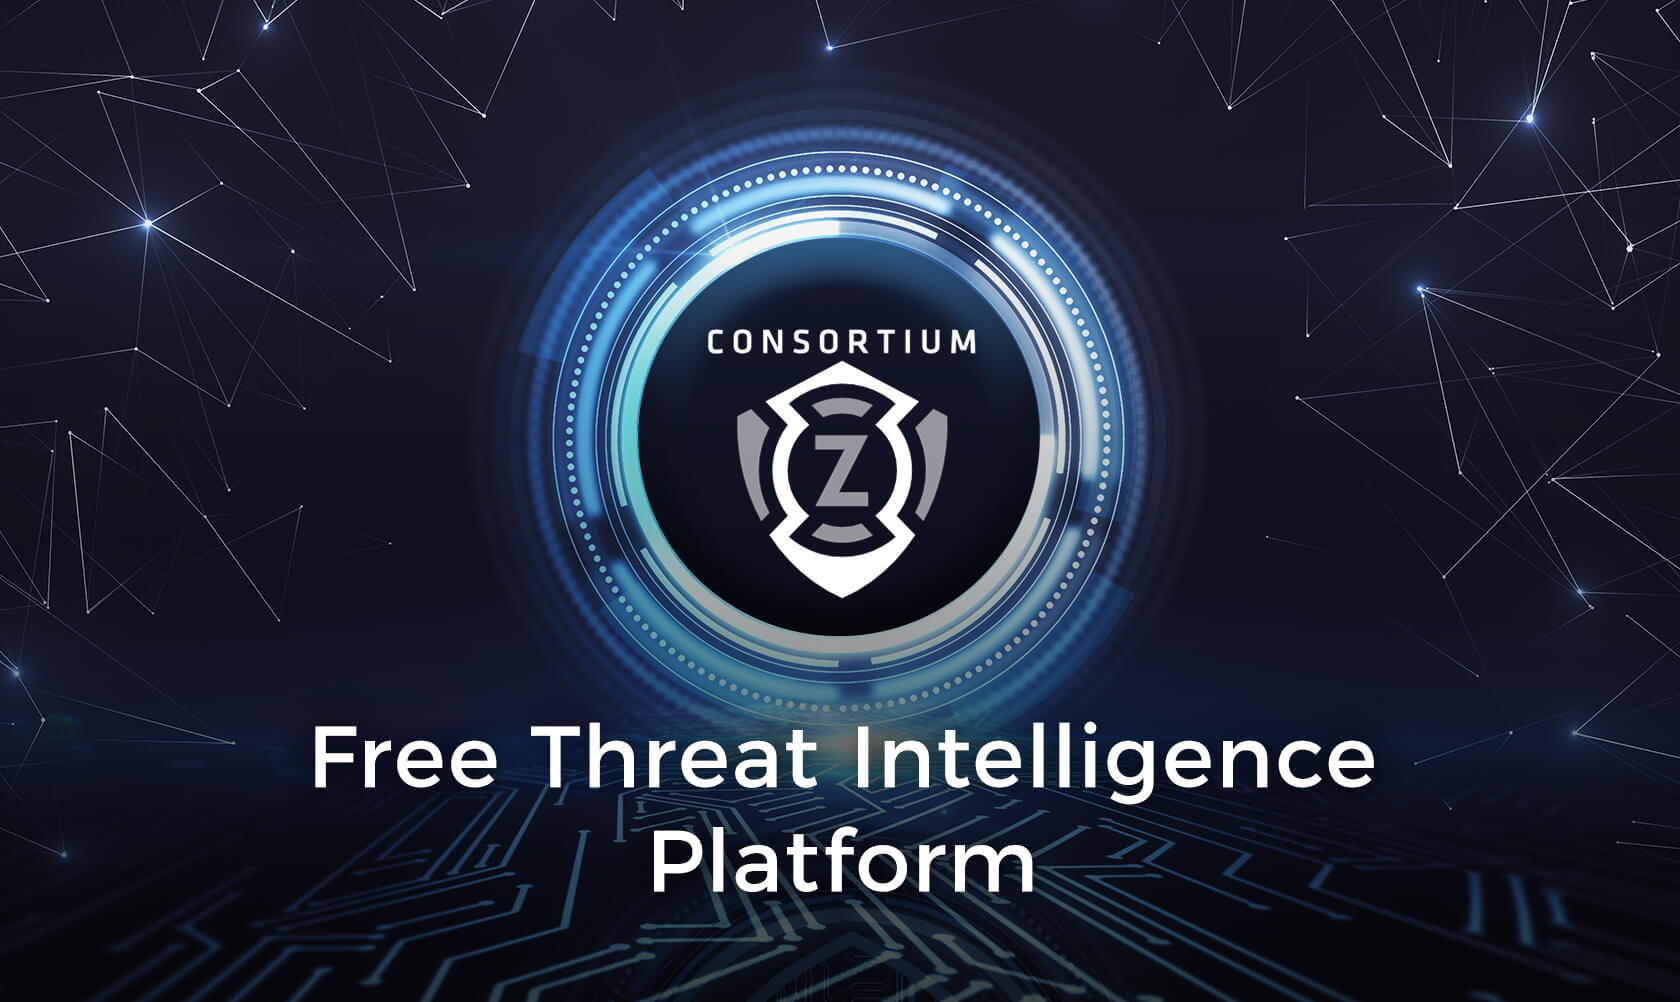 Consortium-Z-free-threat intelligence platform